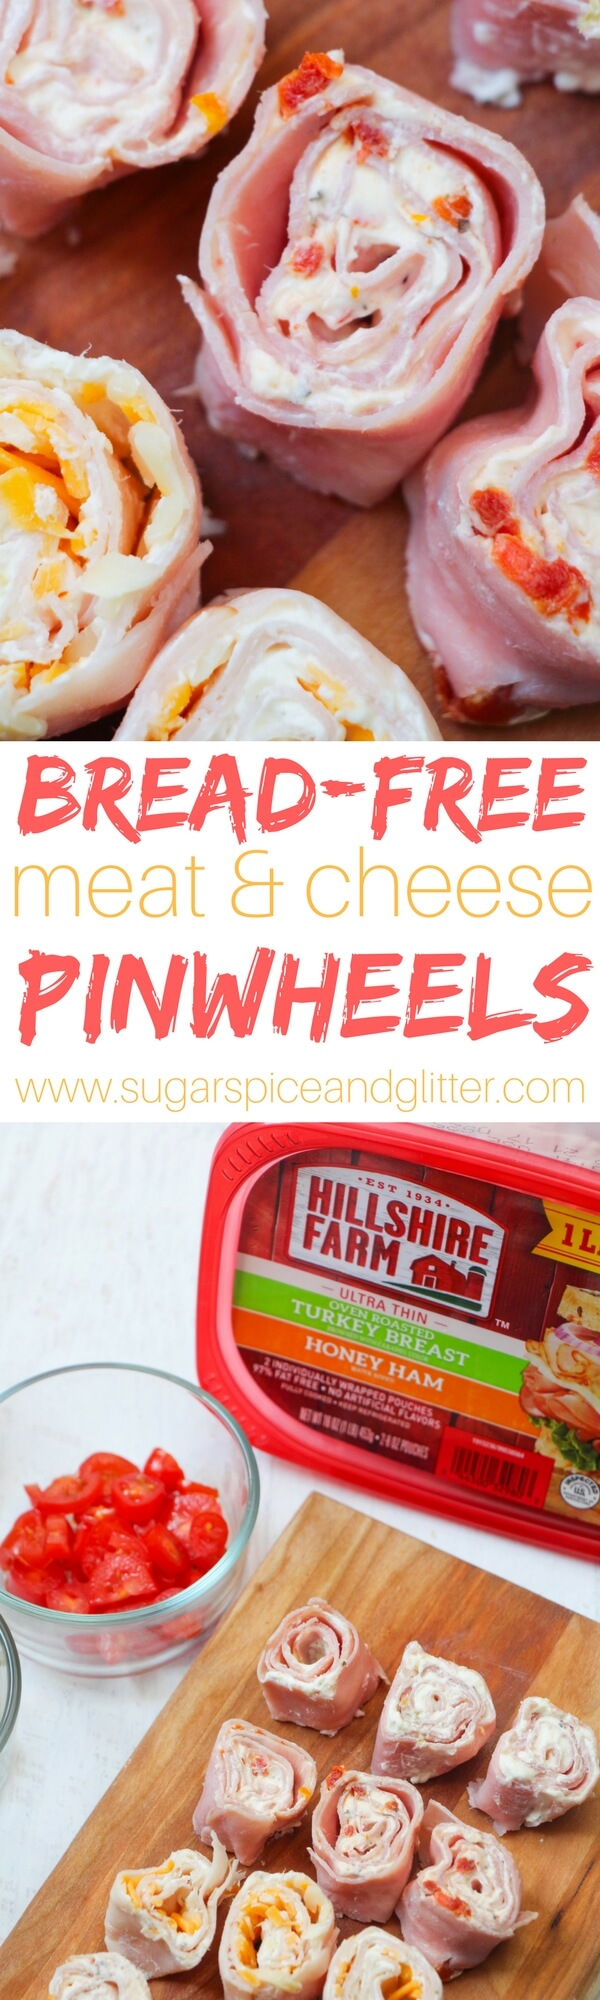 A fun lunch box idea for kids - these bread-free pinwheel meatwiches are a delicious keto snack